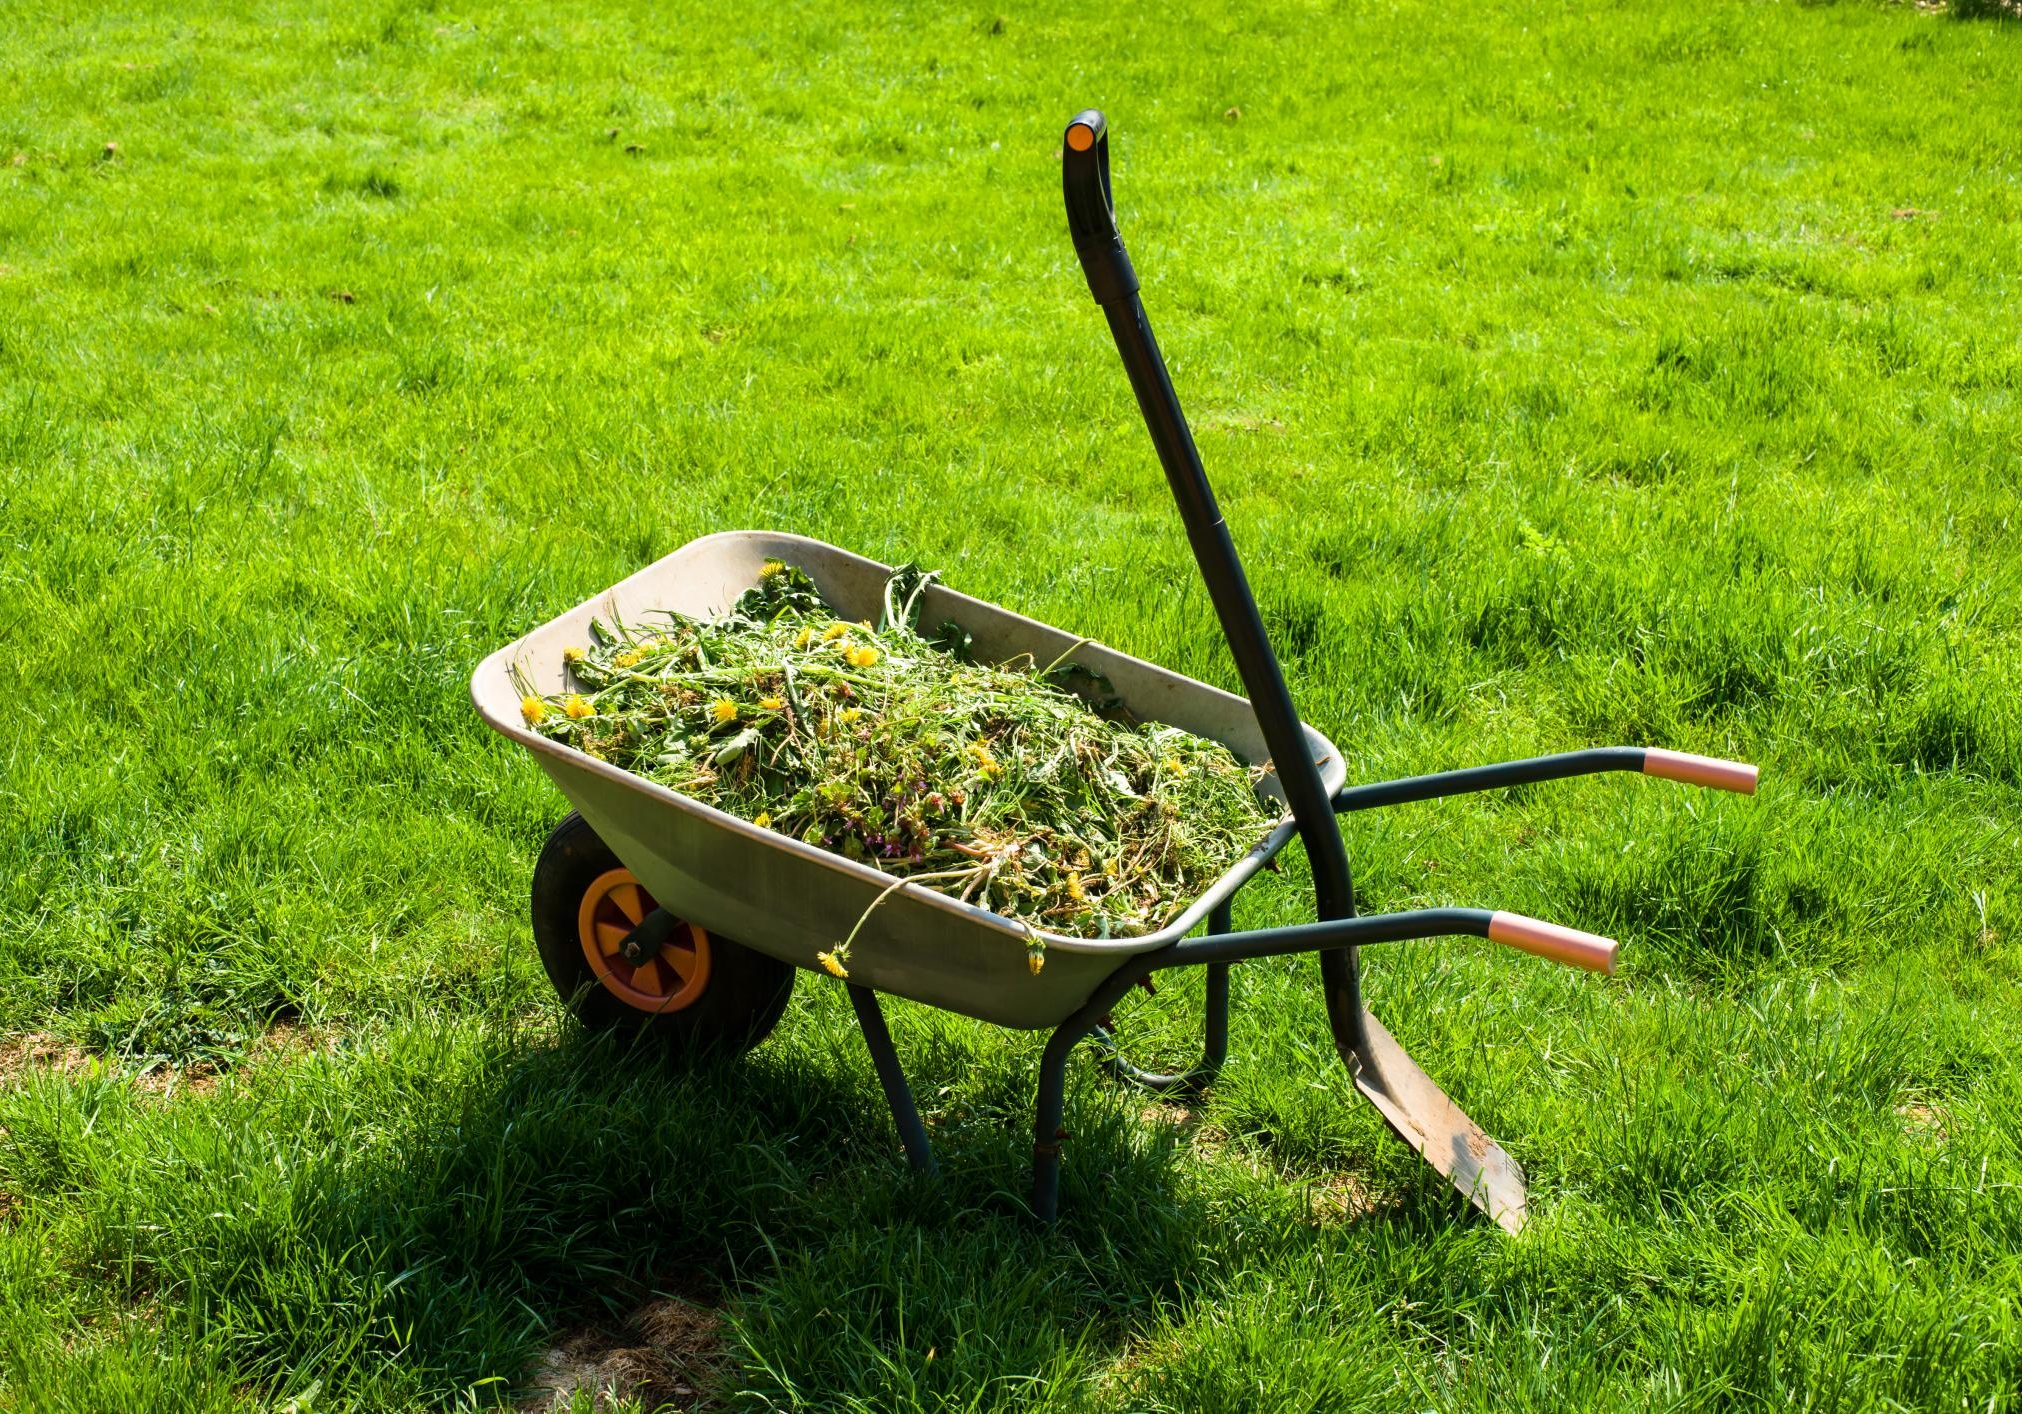 This is a picture of a lawn maintenance.